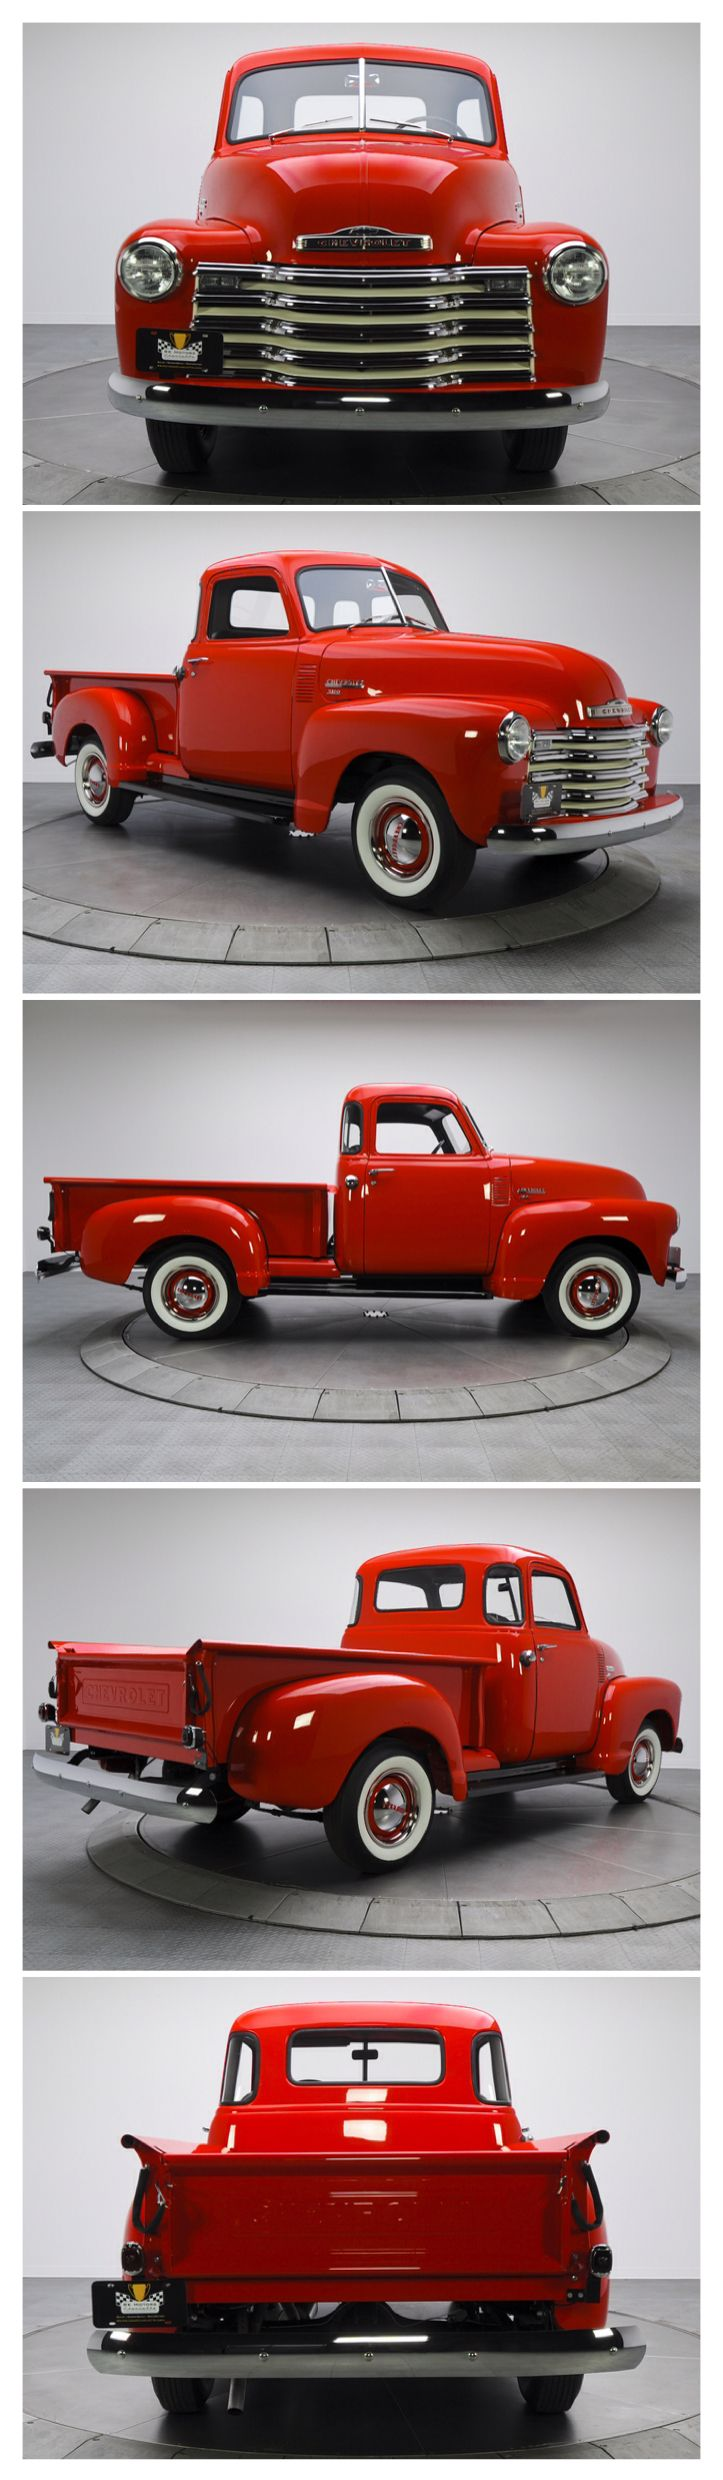 1956 chevrolet belair mjc classic cars pristine - I So Badly Want An Old Pickup Truck 1949 Chevy 3100 Pickup